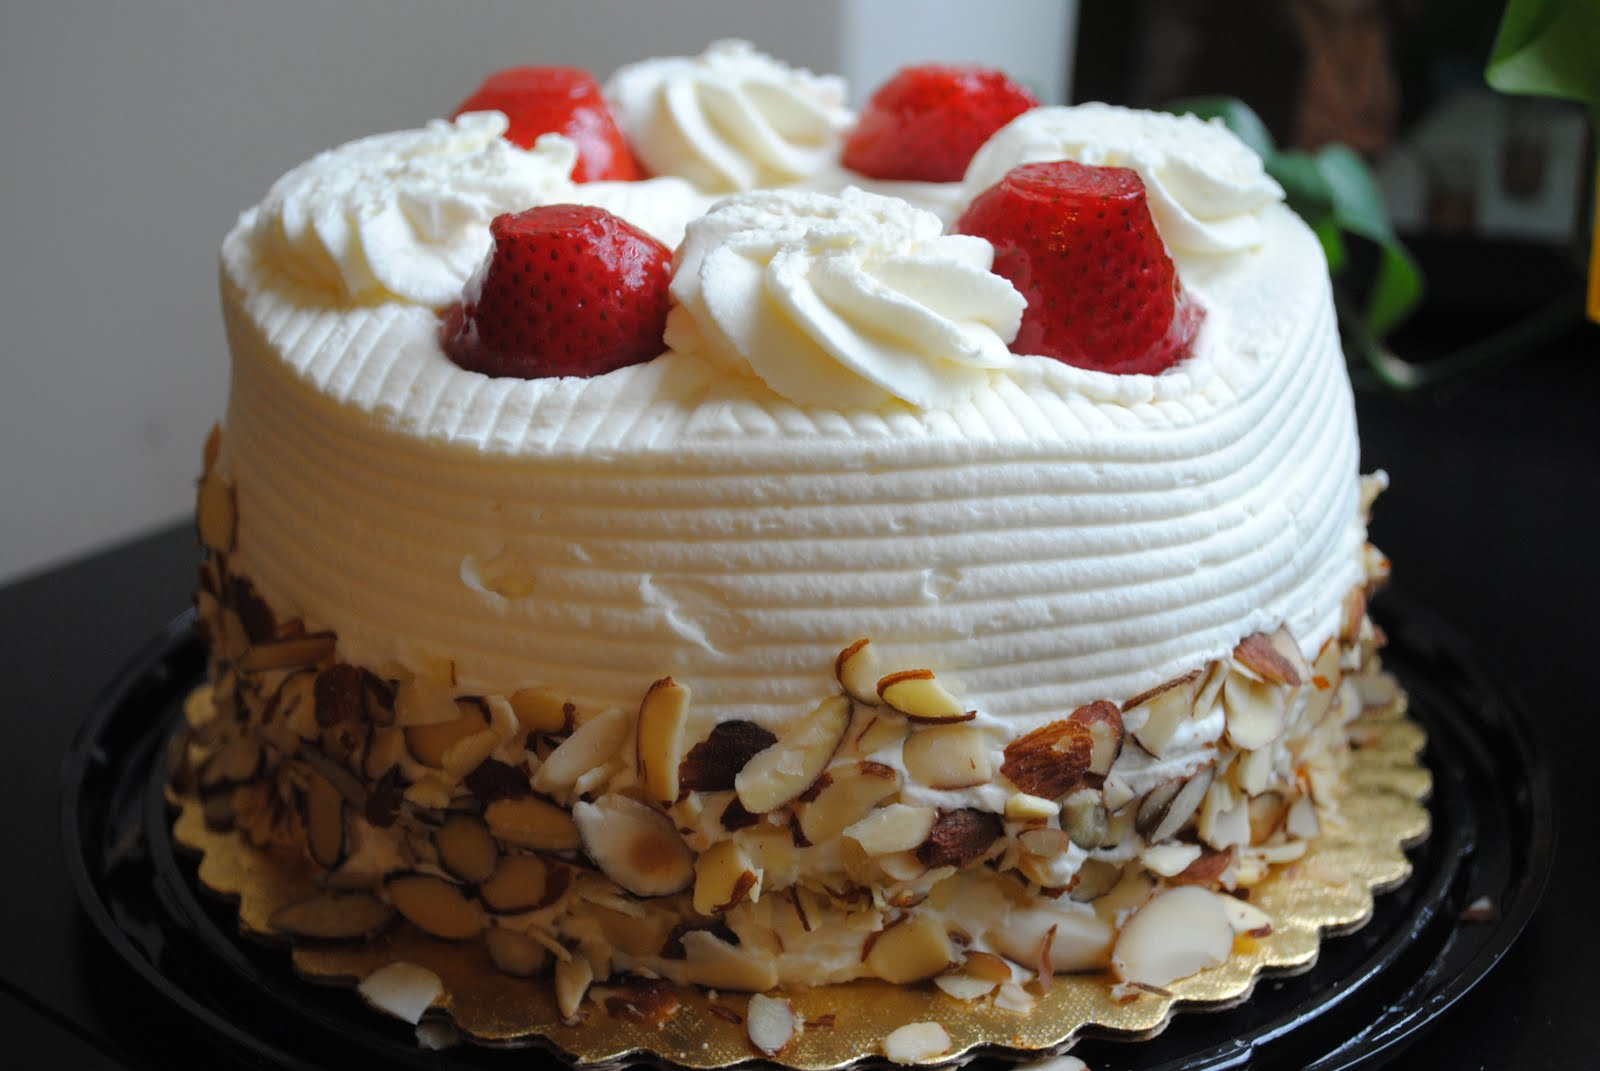 Whole Foods Strawberry And Cream Cake